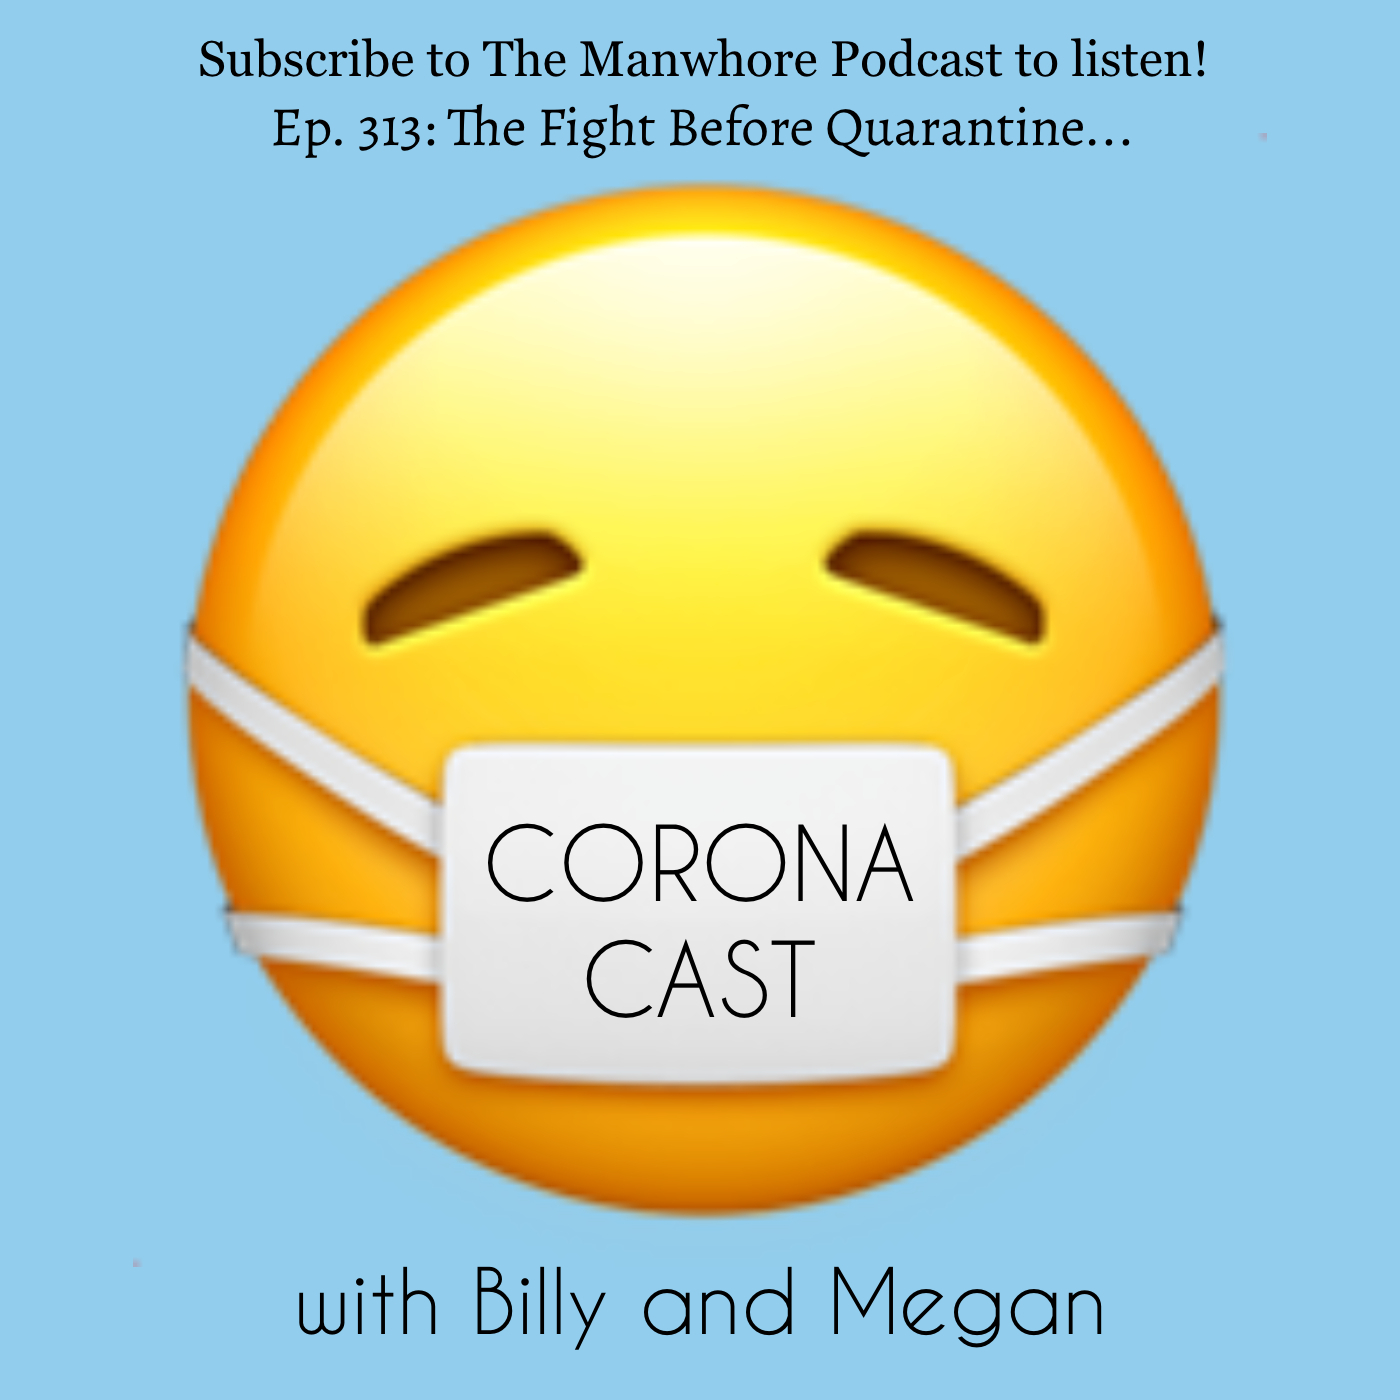 The Manwhore Podcast: A Sex-Positive Quest - Ep. 313: Corona Cast Part 2 - The Fight Before Quarantine...